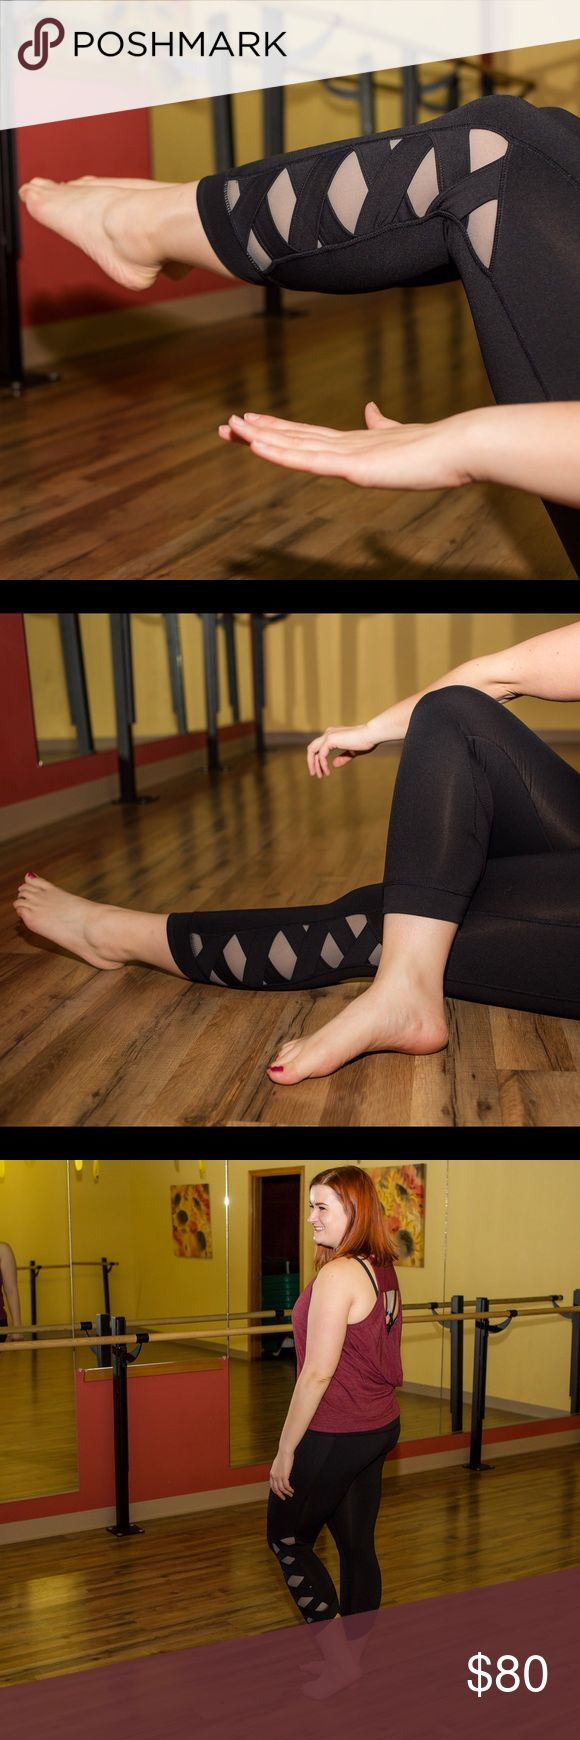 Black Lattice Compression Capris Compression fit for muscular support during high-intensity training but comfortable enough for yoga or wearing day to day. High waistband for tummy smoothing and great contouring in the leg. Stylish lattice detail on calf. Back pocket fits iphones 4 through 6. Tema Athletics Pants Capris